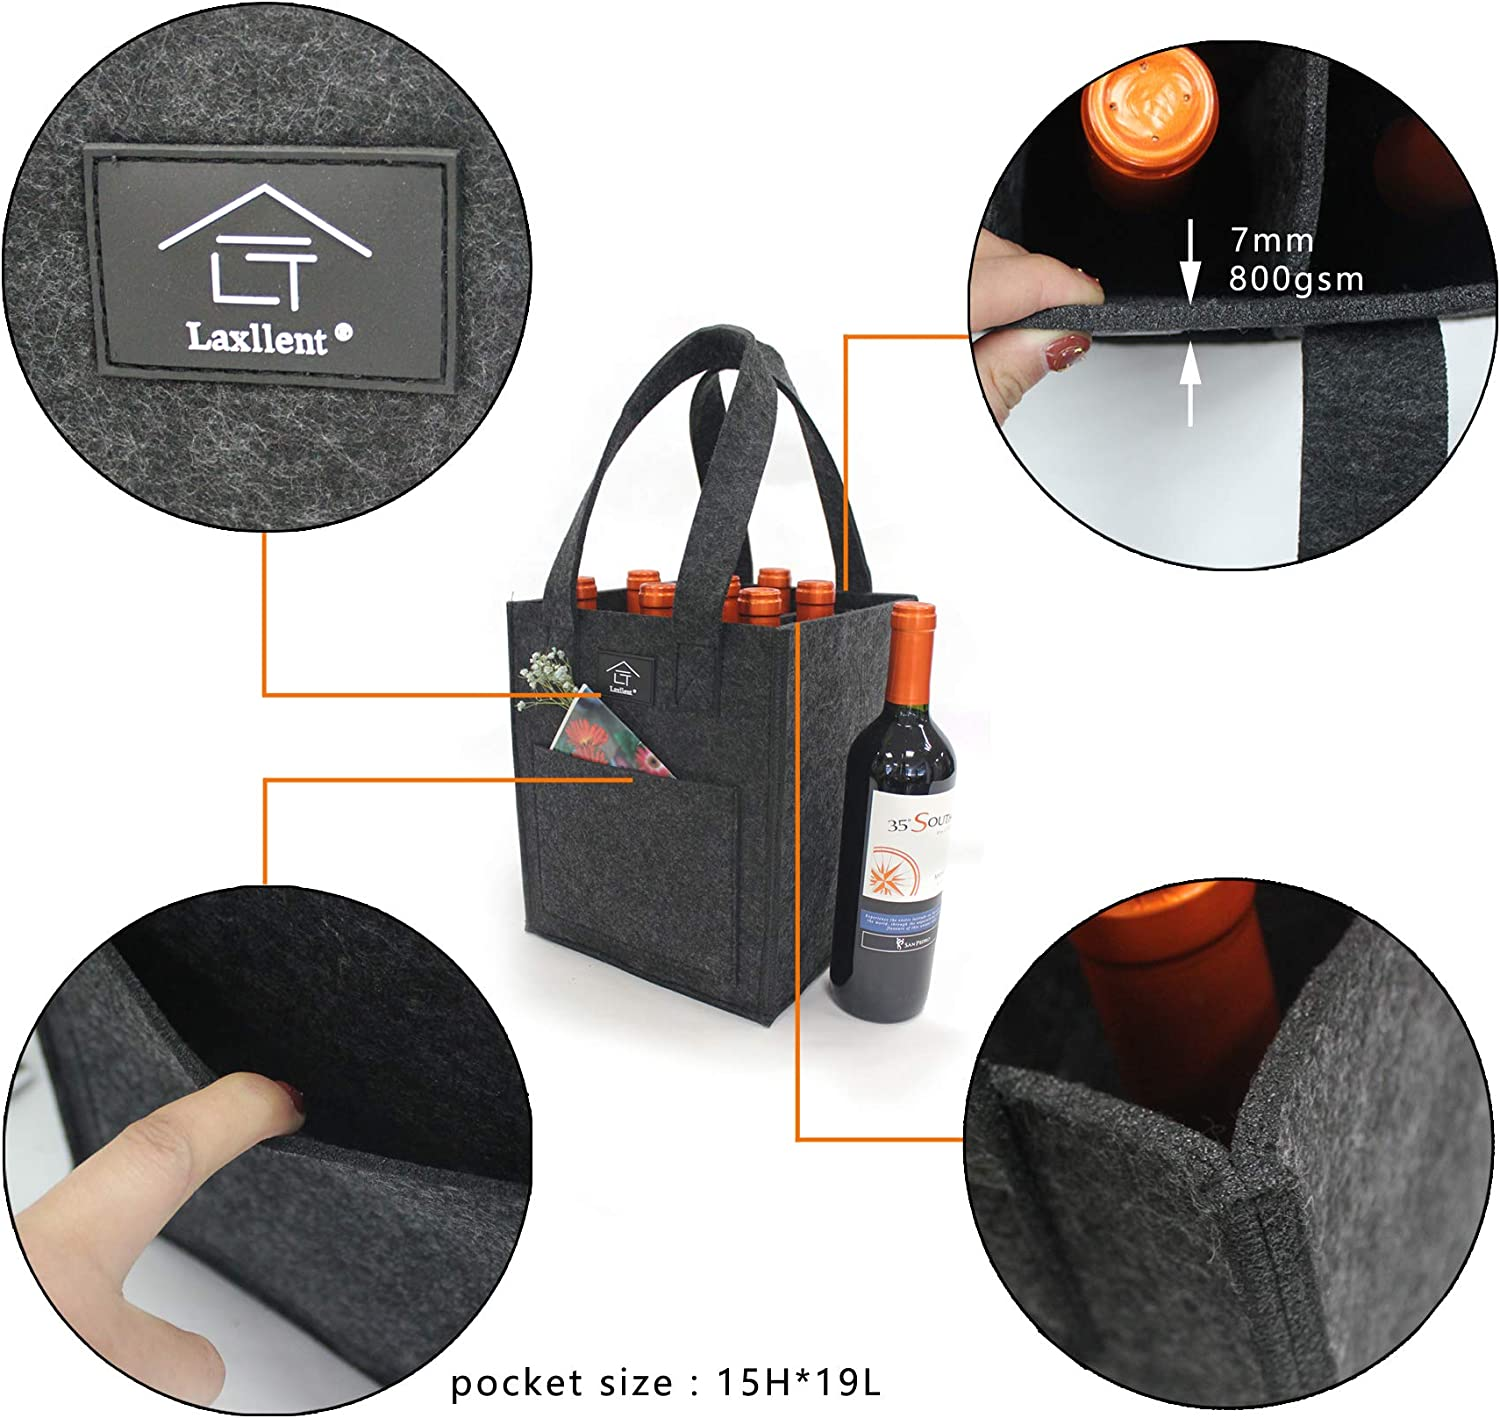 Thick Felt Wine Bottle Carriers Tote Bag,Reusable Washable with Removable Divider,Wine Gift Bag for Picnic BBQ Party